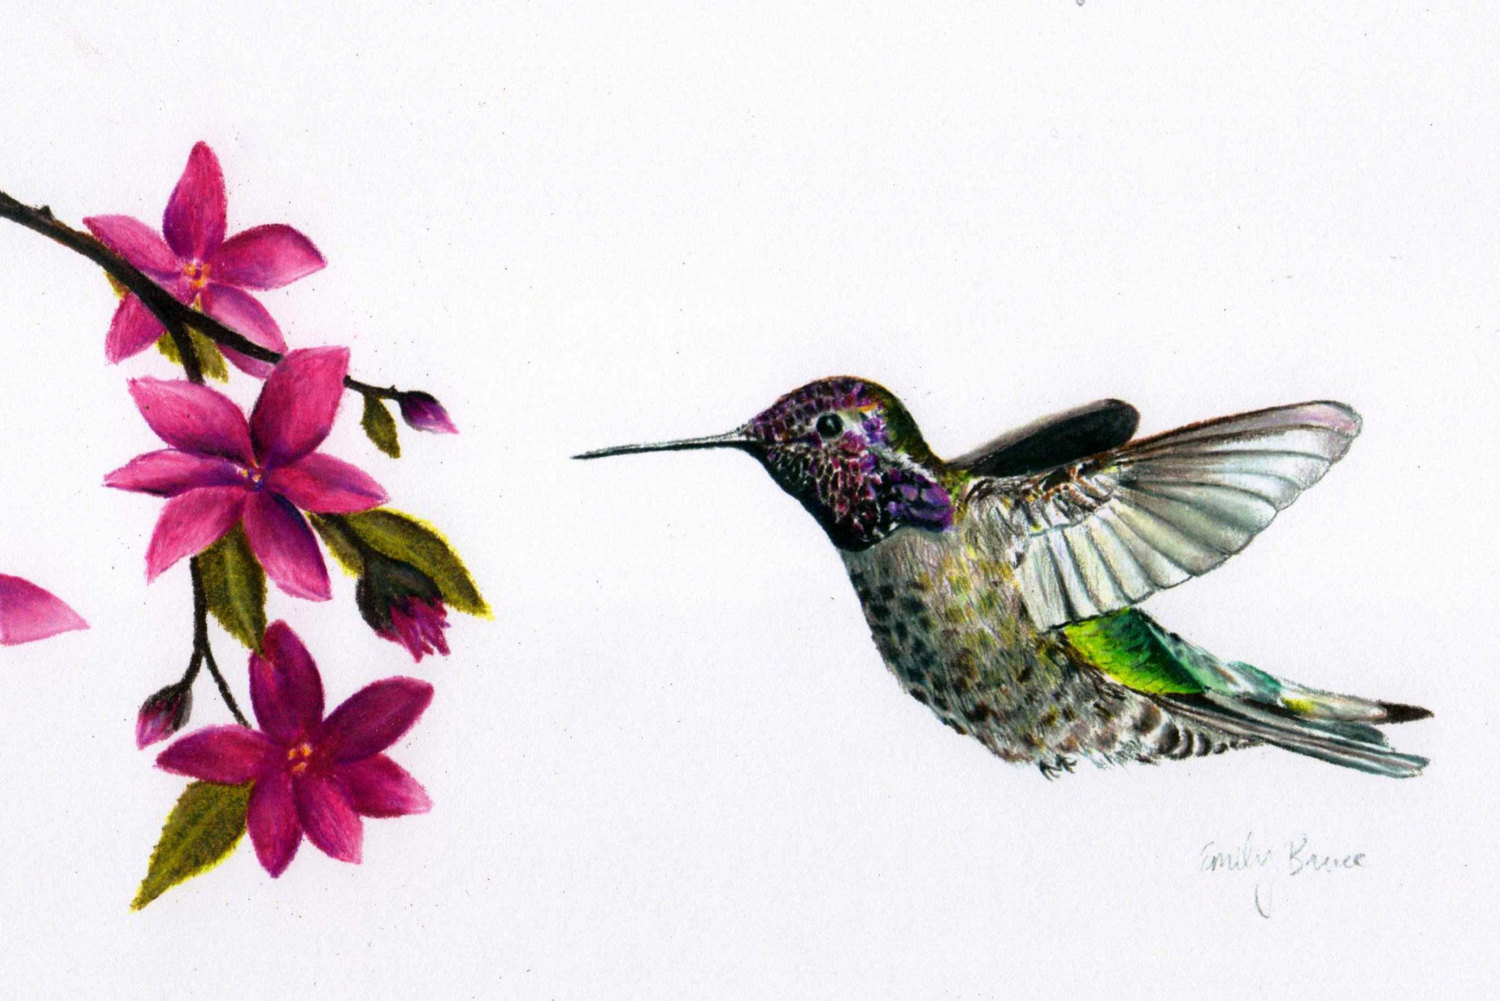 1500x1001 Drawings Of Hummingbirds And Flowers Colored Pencil Hummingbird